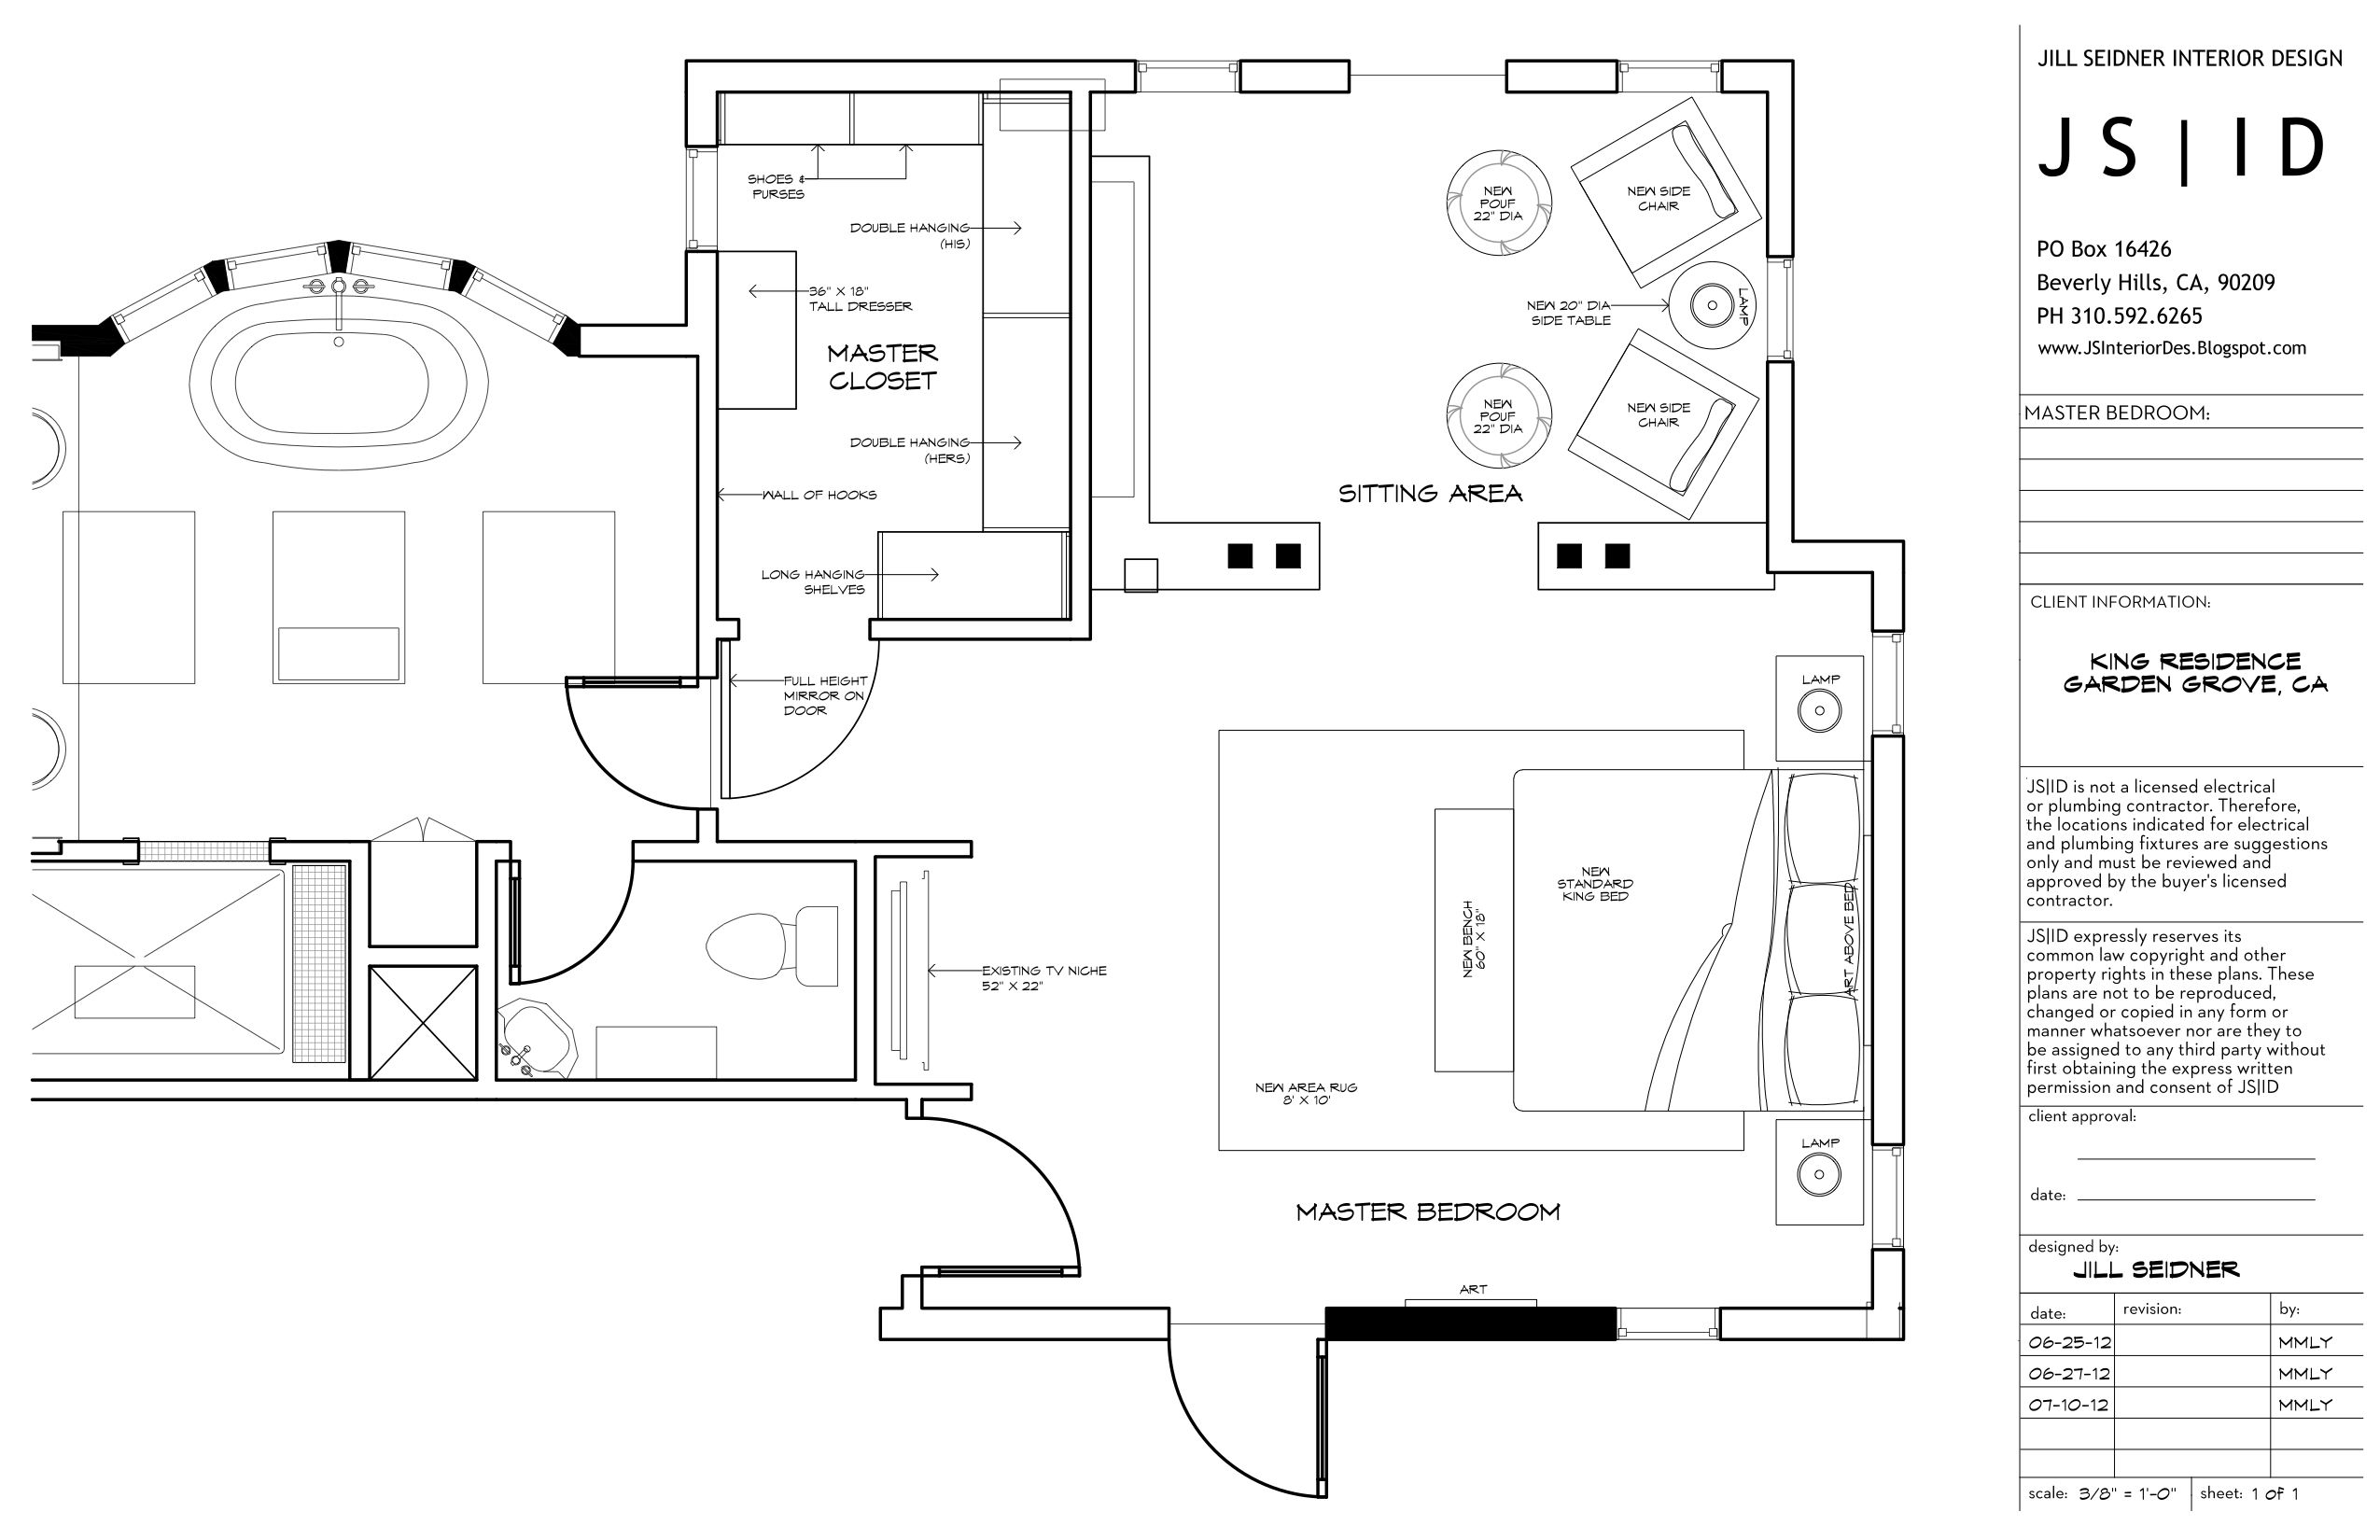 closet and design ideas bedrooms ensuite with master bathroom spacious bedroom walk plans room wardrobe in dressing layout floor